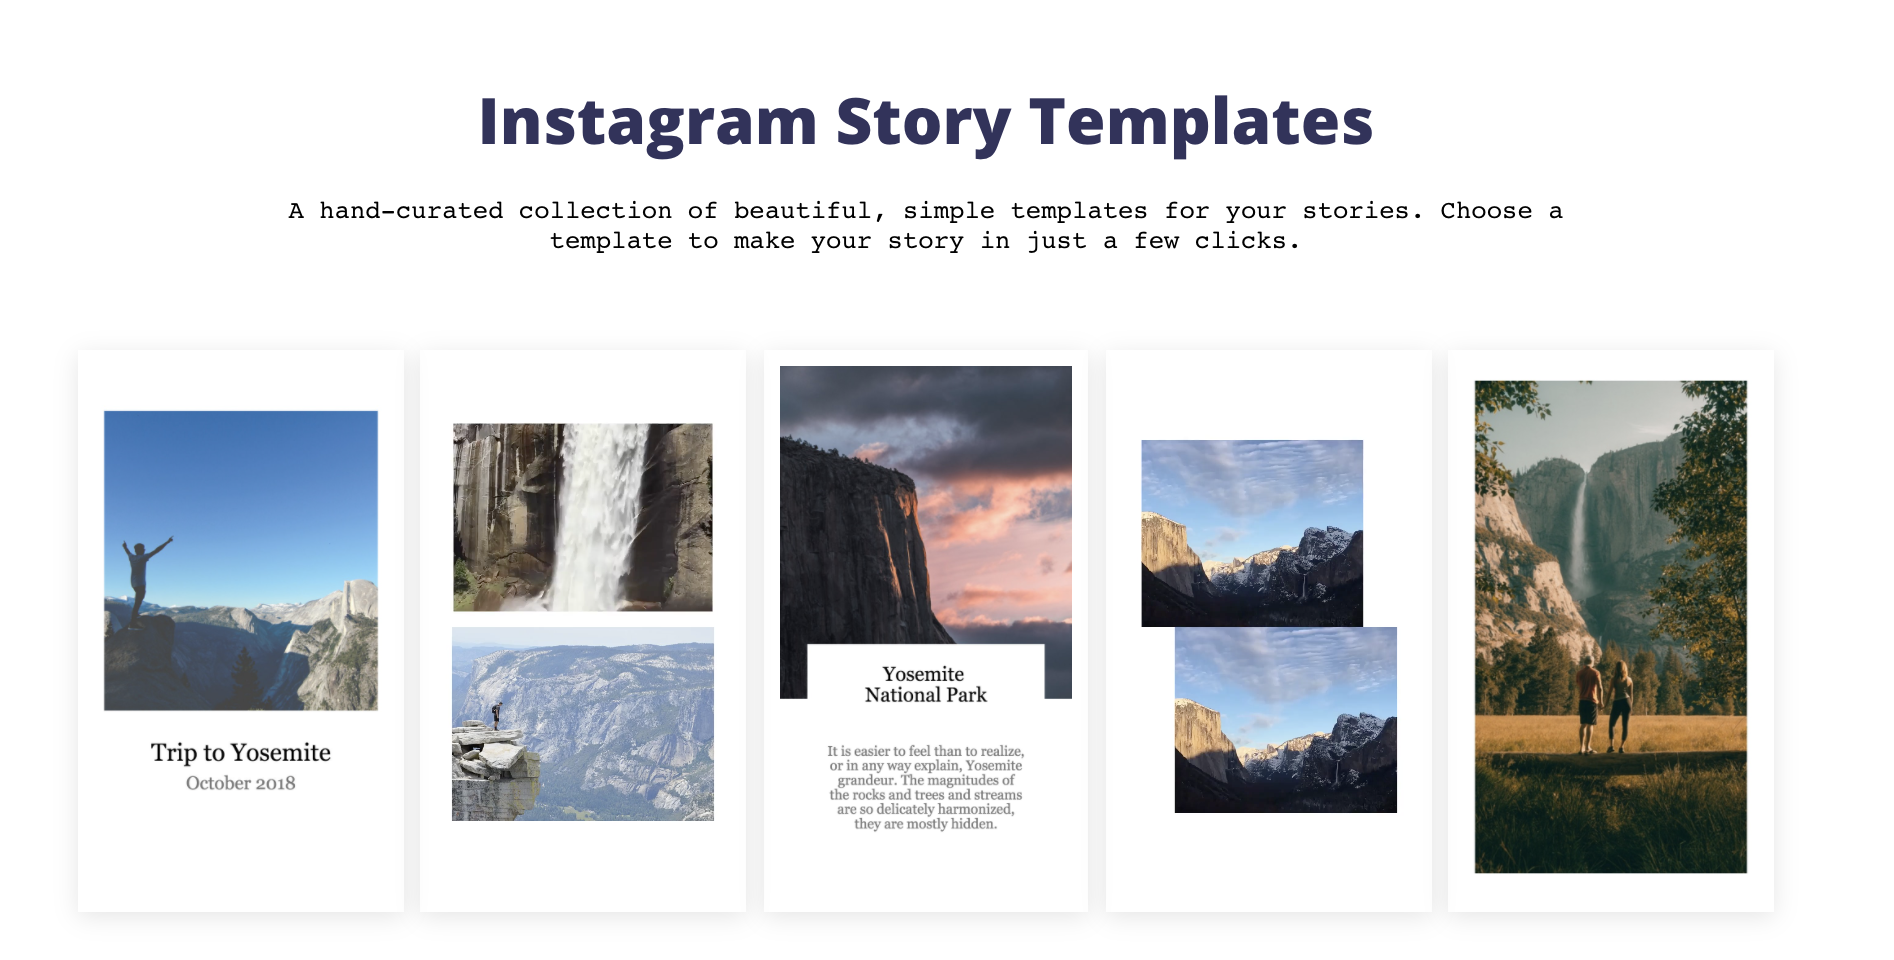 Kapwing's Instagram Story Templates